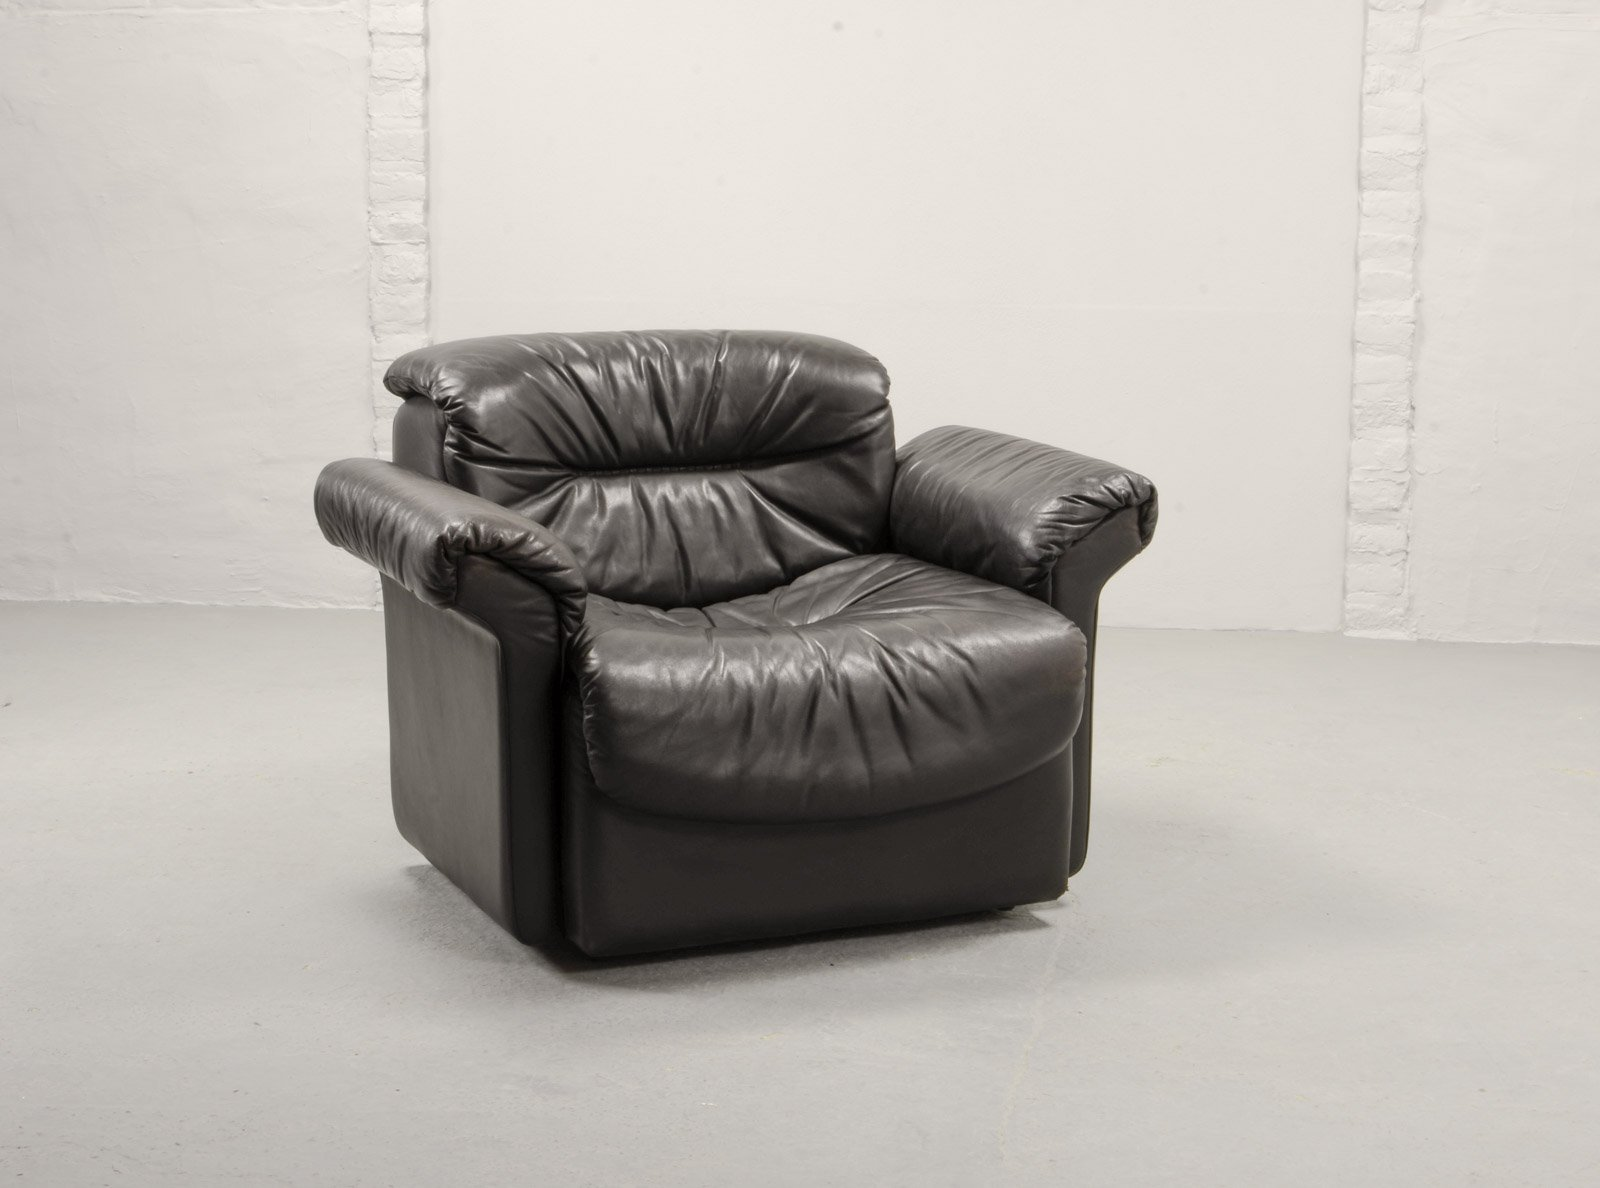 Peachy Black Leather Ds17 1 Lounge Chair From De Sede 1970S Pdpeps Interior Chair Design Pdpepsorg